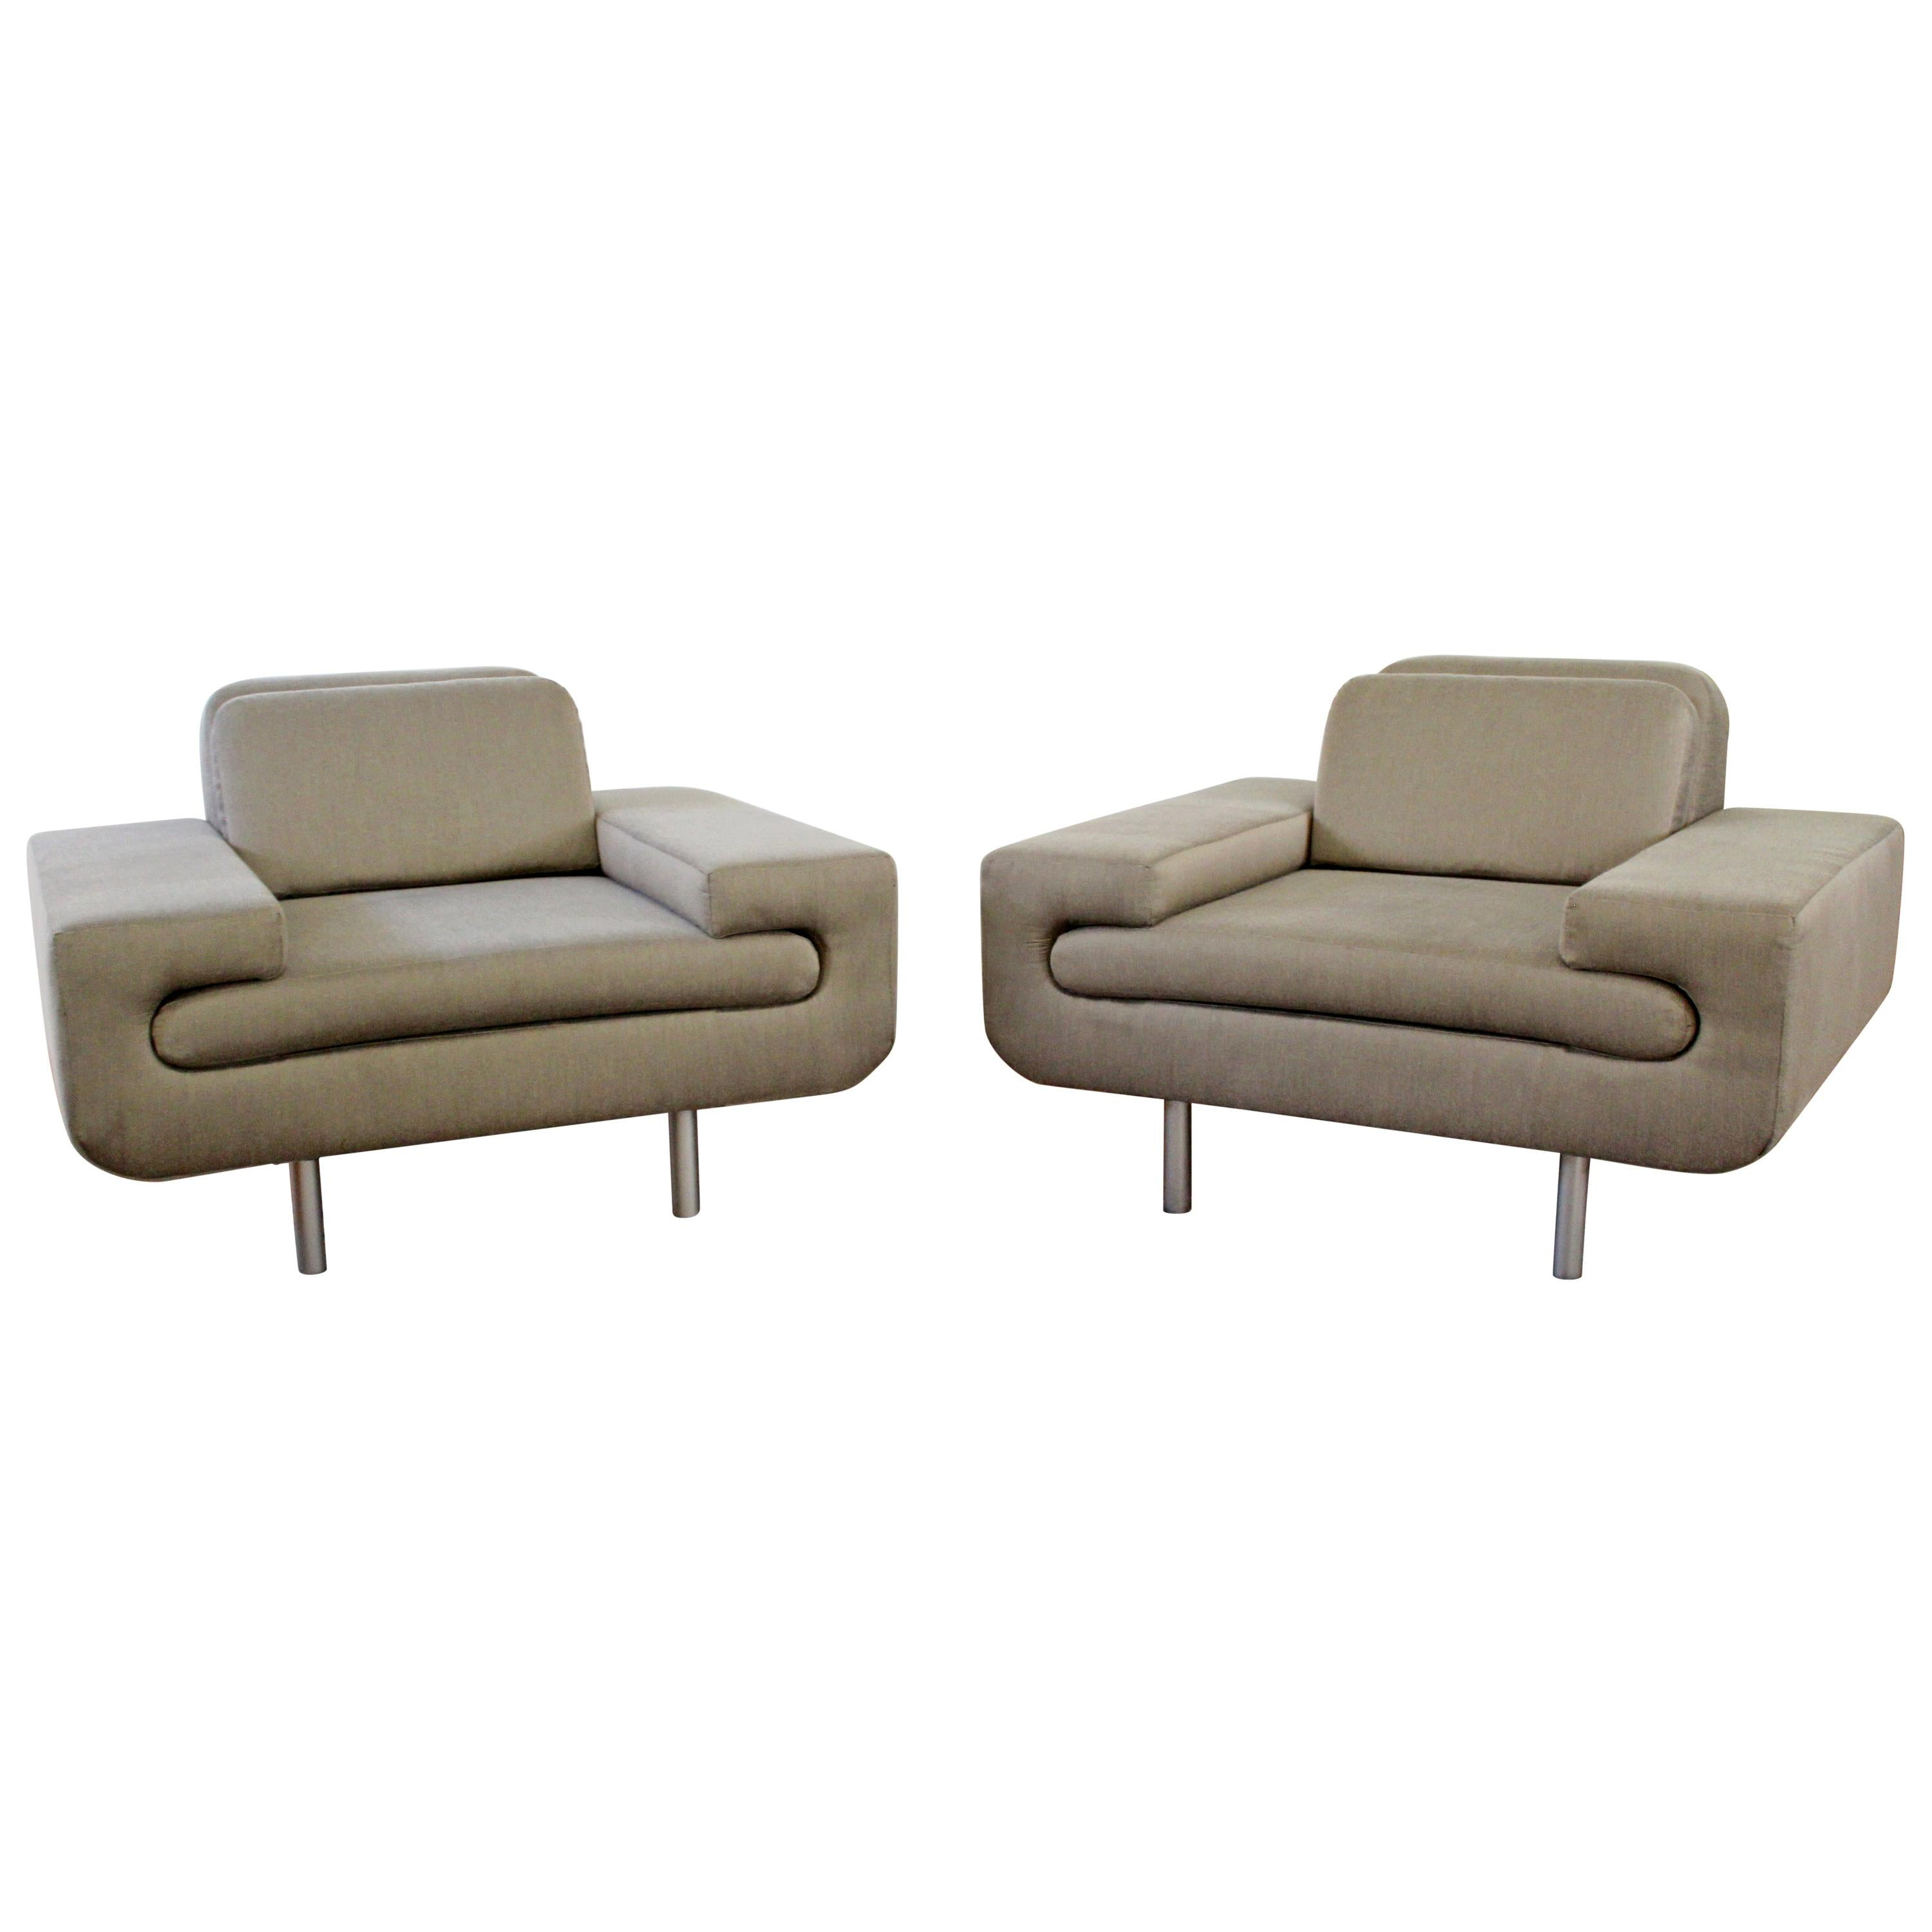 Contemporary Modernist Pair of Sculptural Lounge Chairs by Weiman Preview